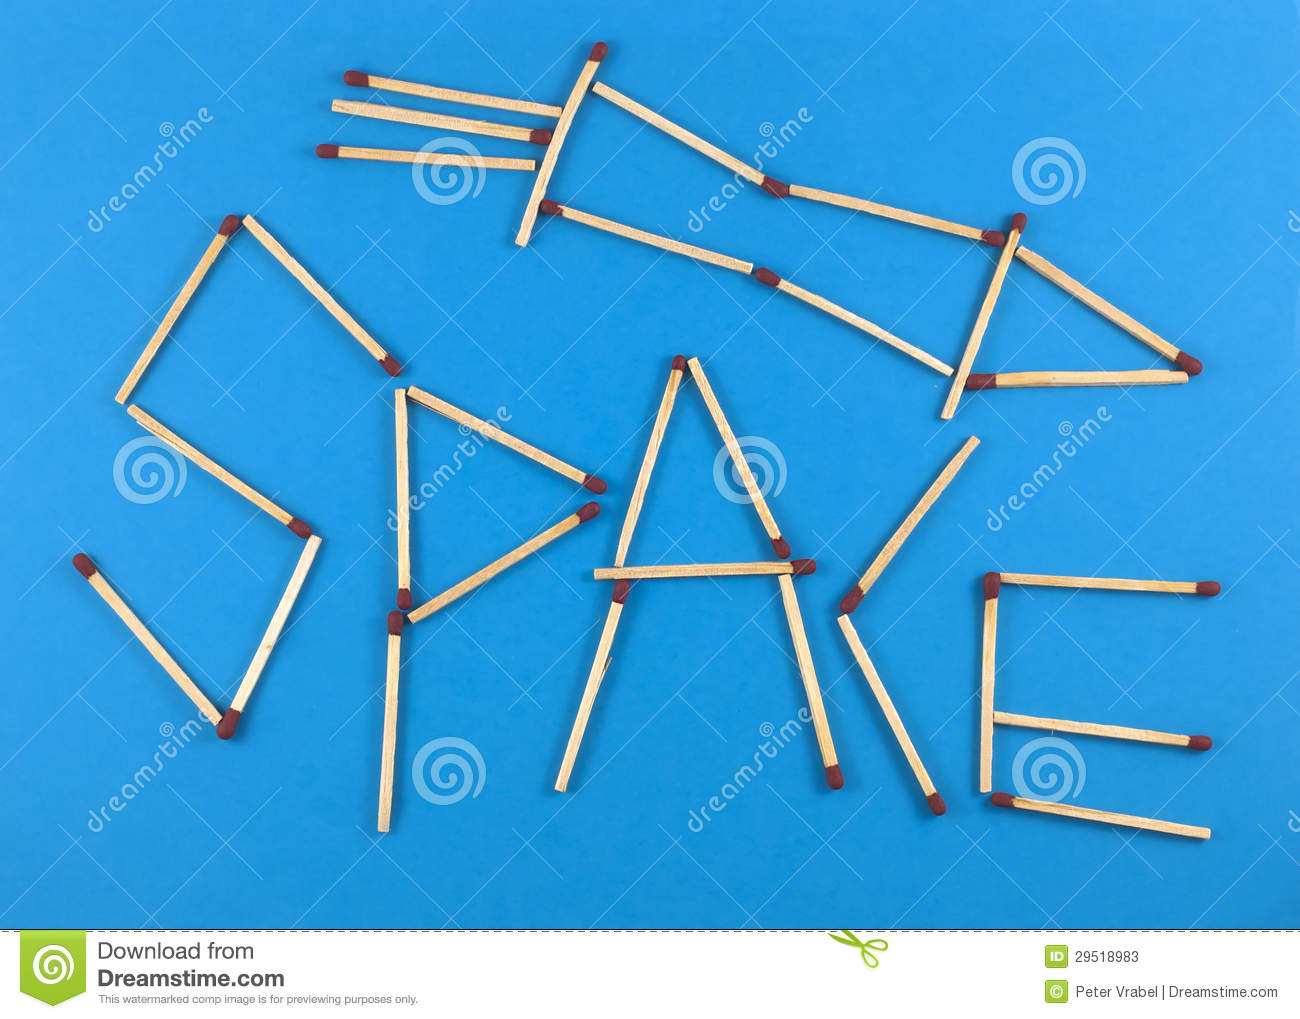 Word space made of matchsticks stock image image 29518983 for When was space made